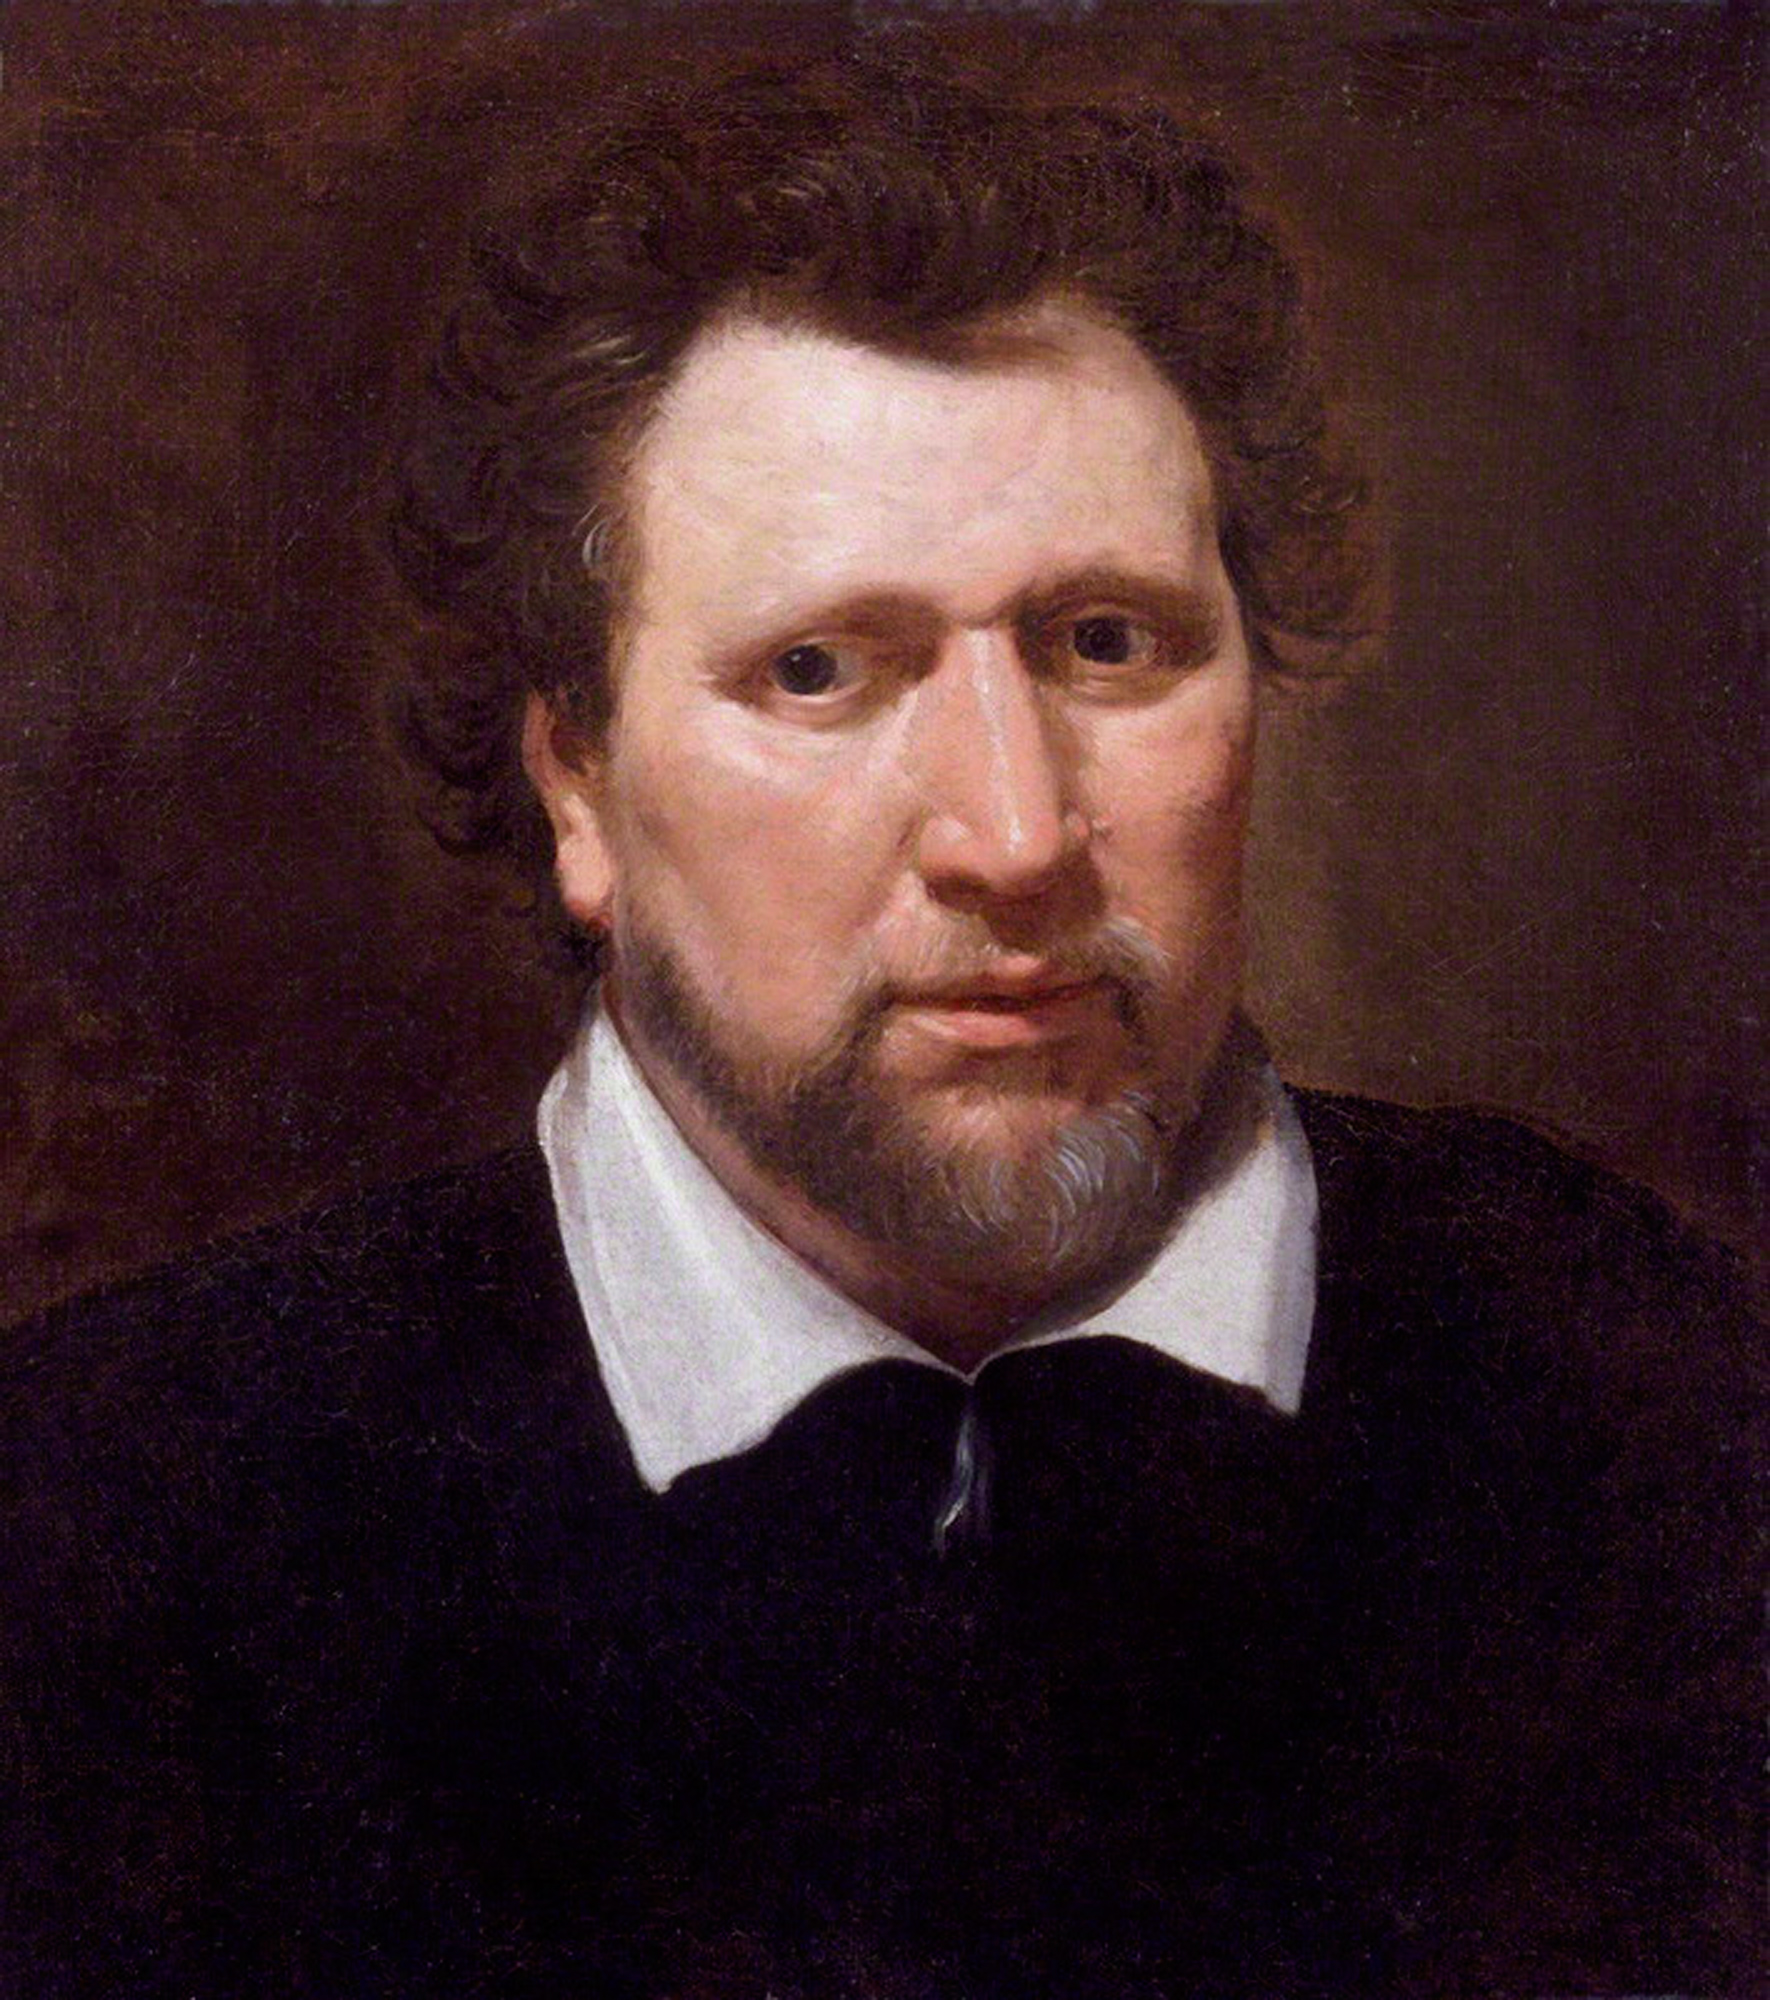 Portrait of Ben Jonson, c. 1617